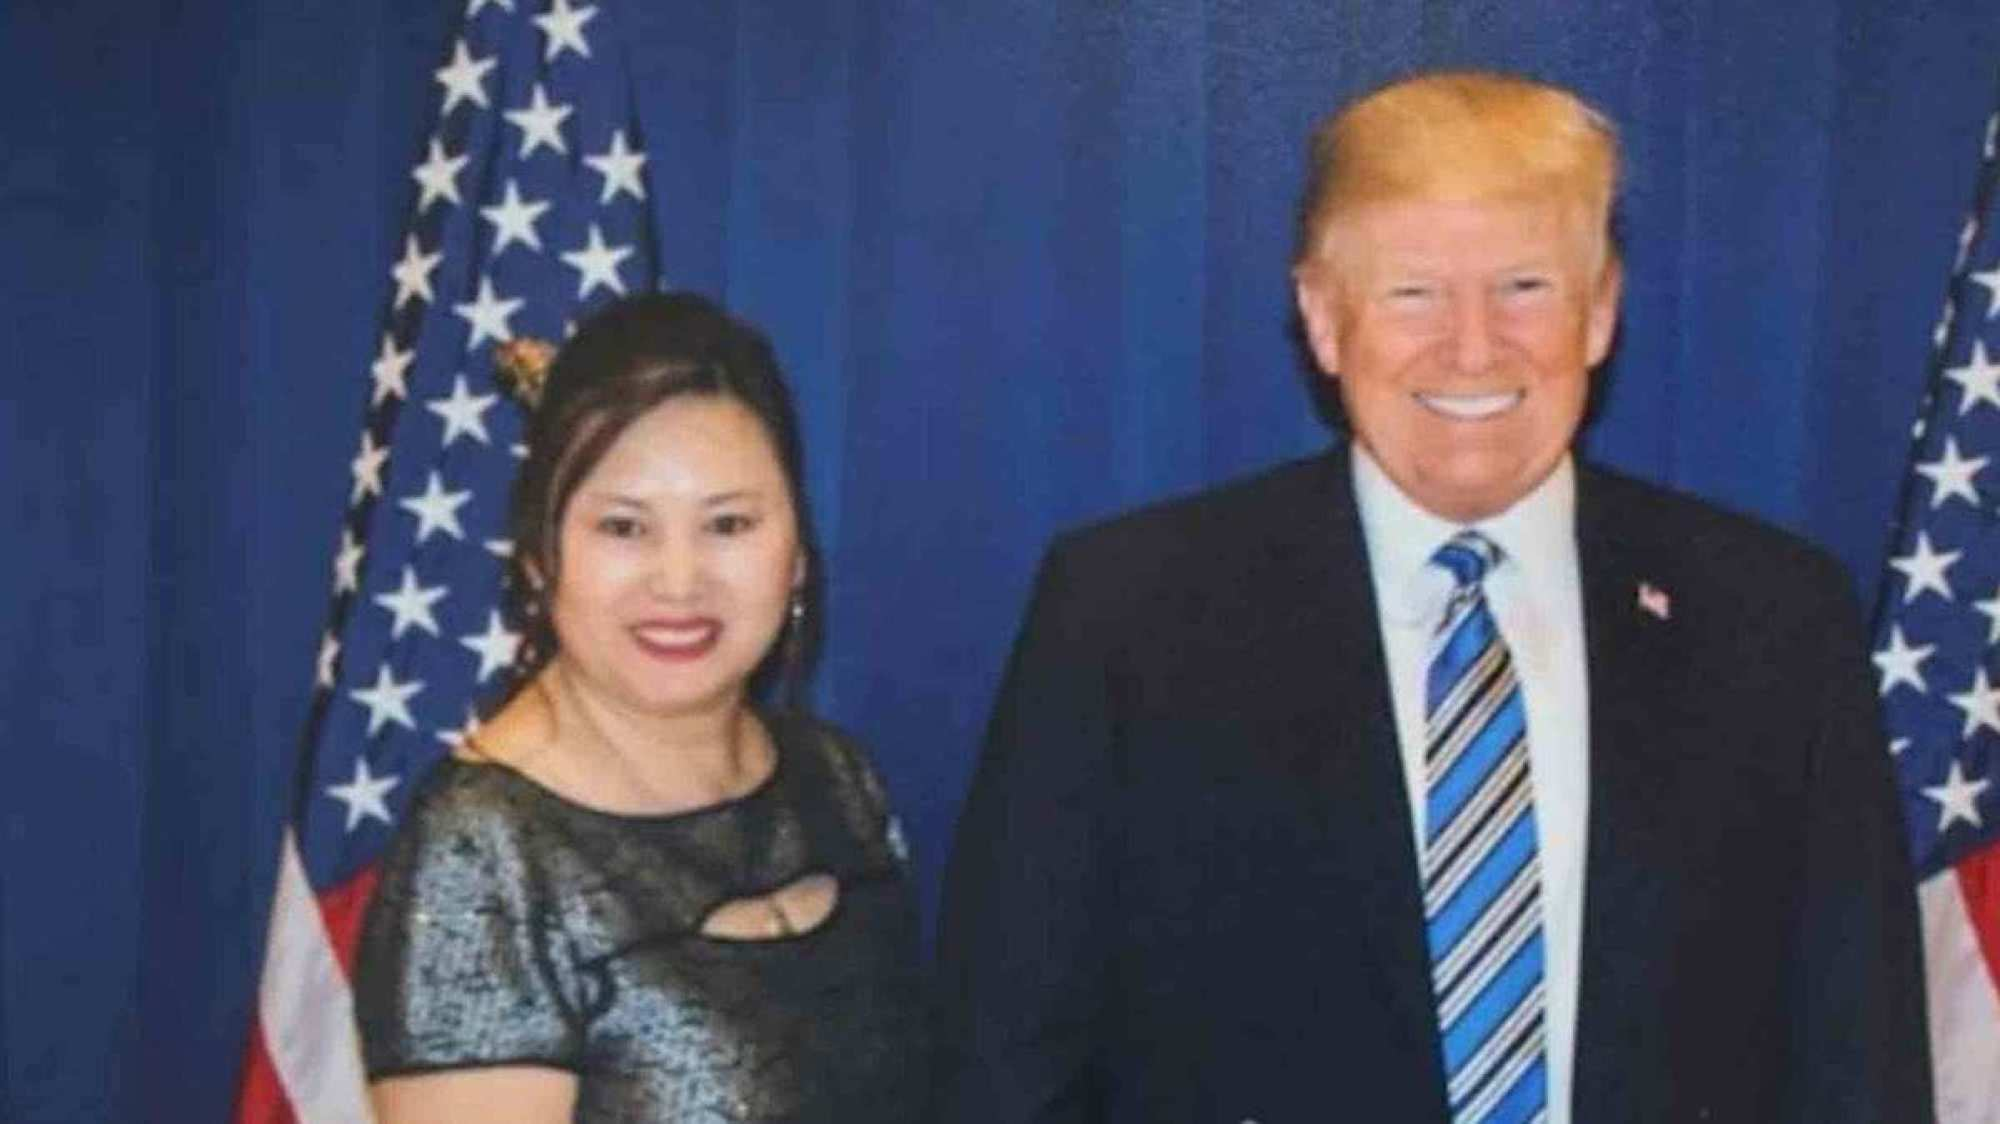 Cindy Yang and Donald Trump